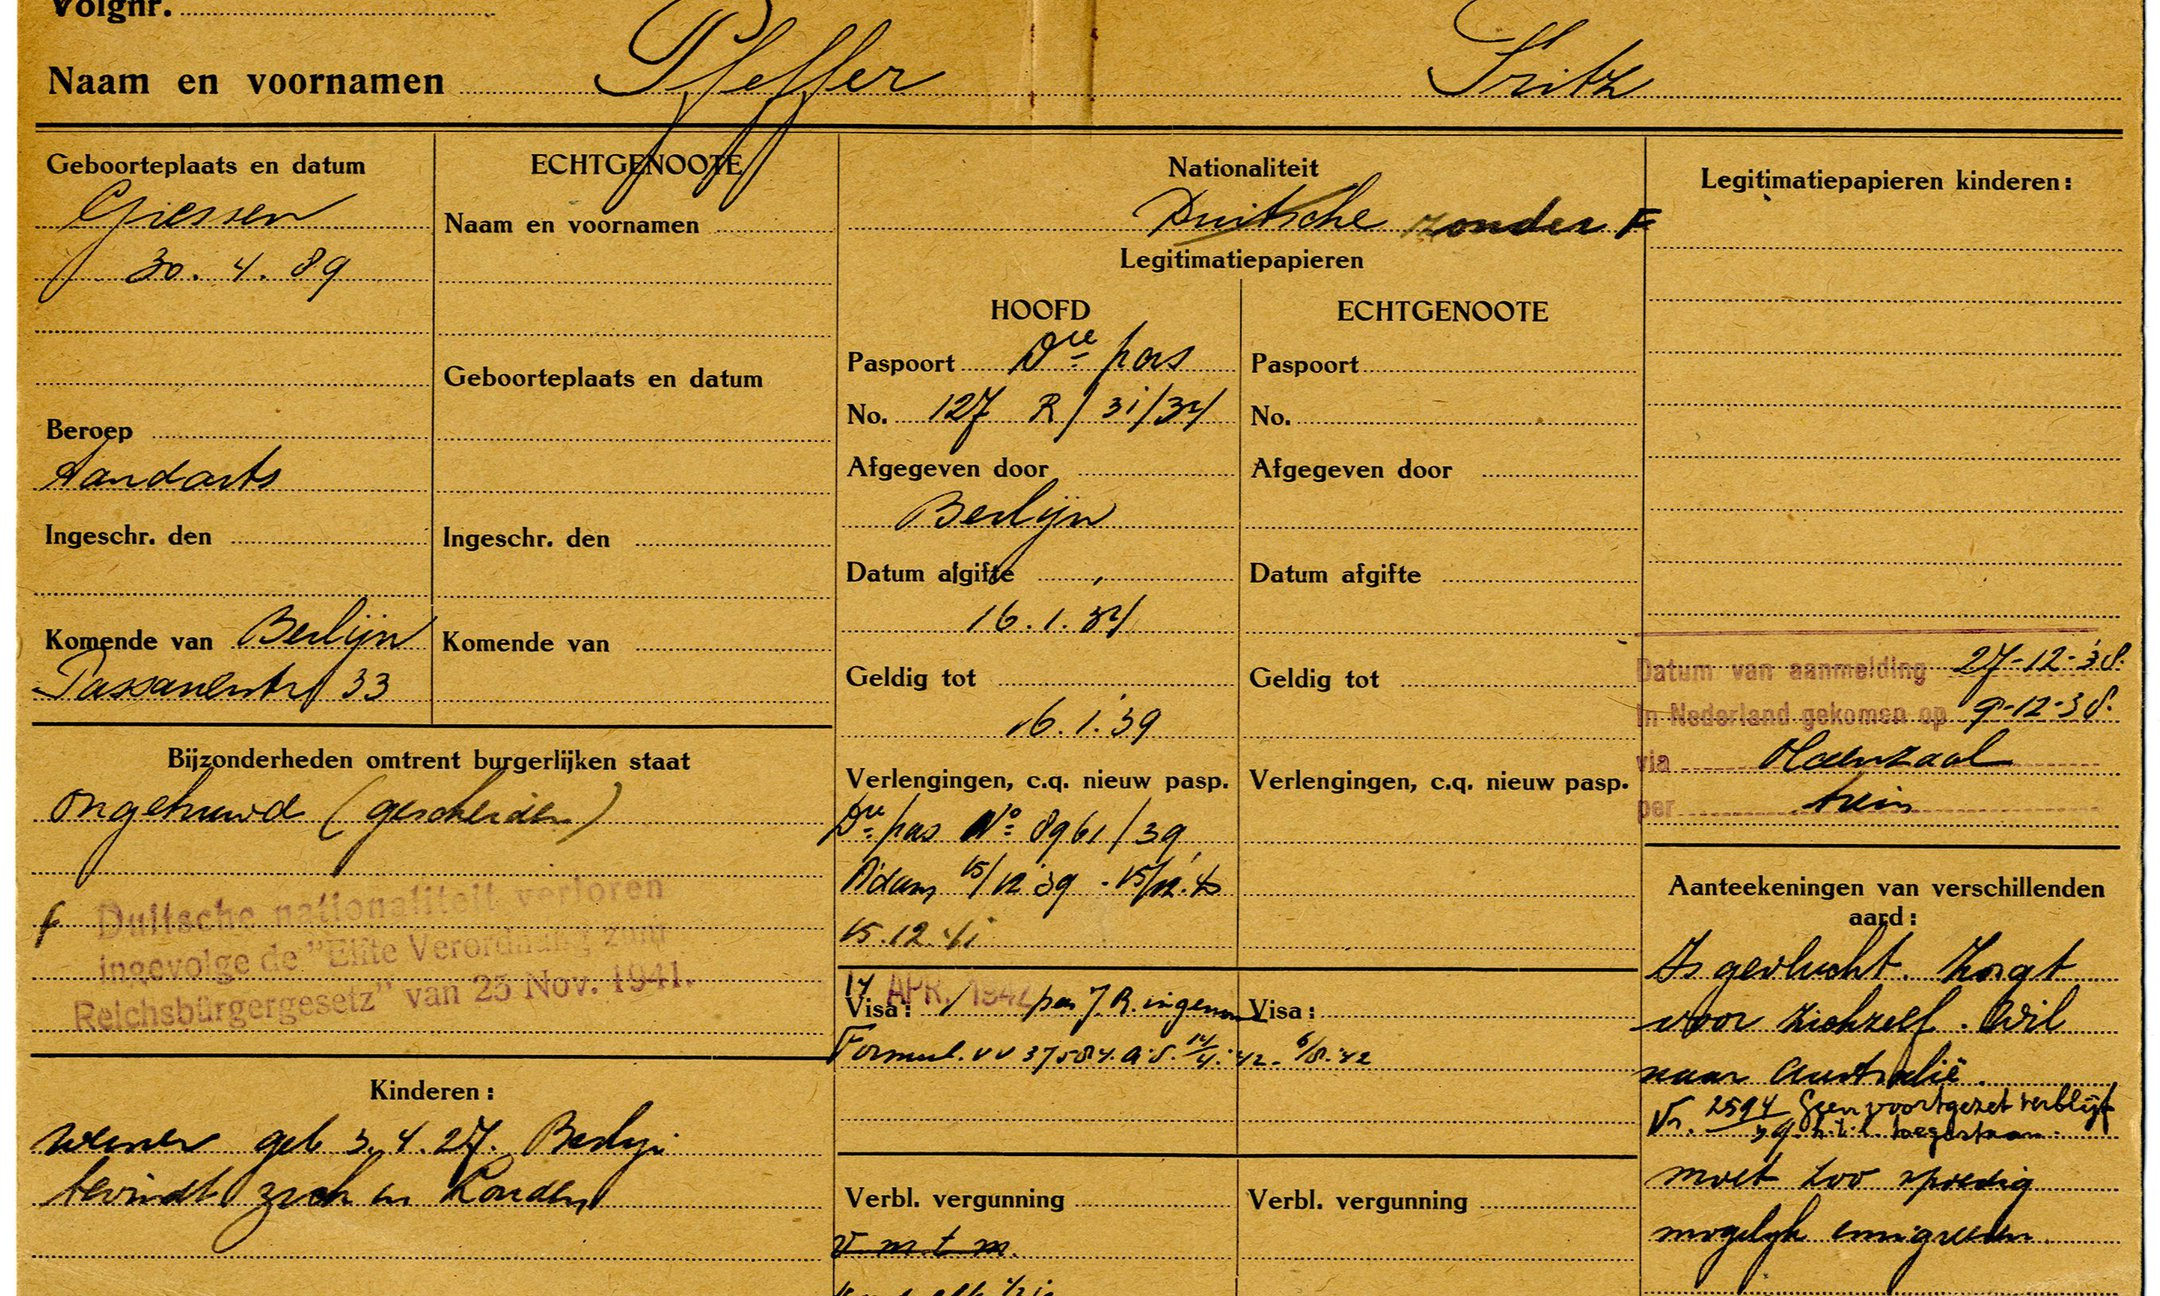 Fritz Pfeffer's registration card from the Amsterdam Immigration Authorities (1939)